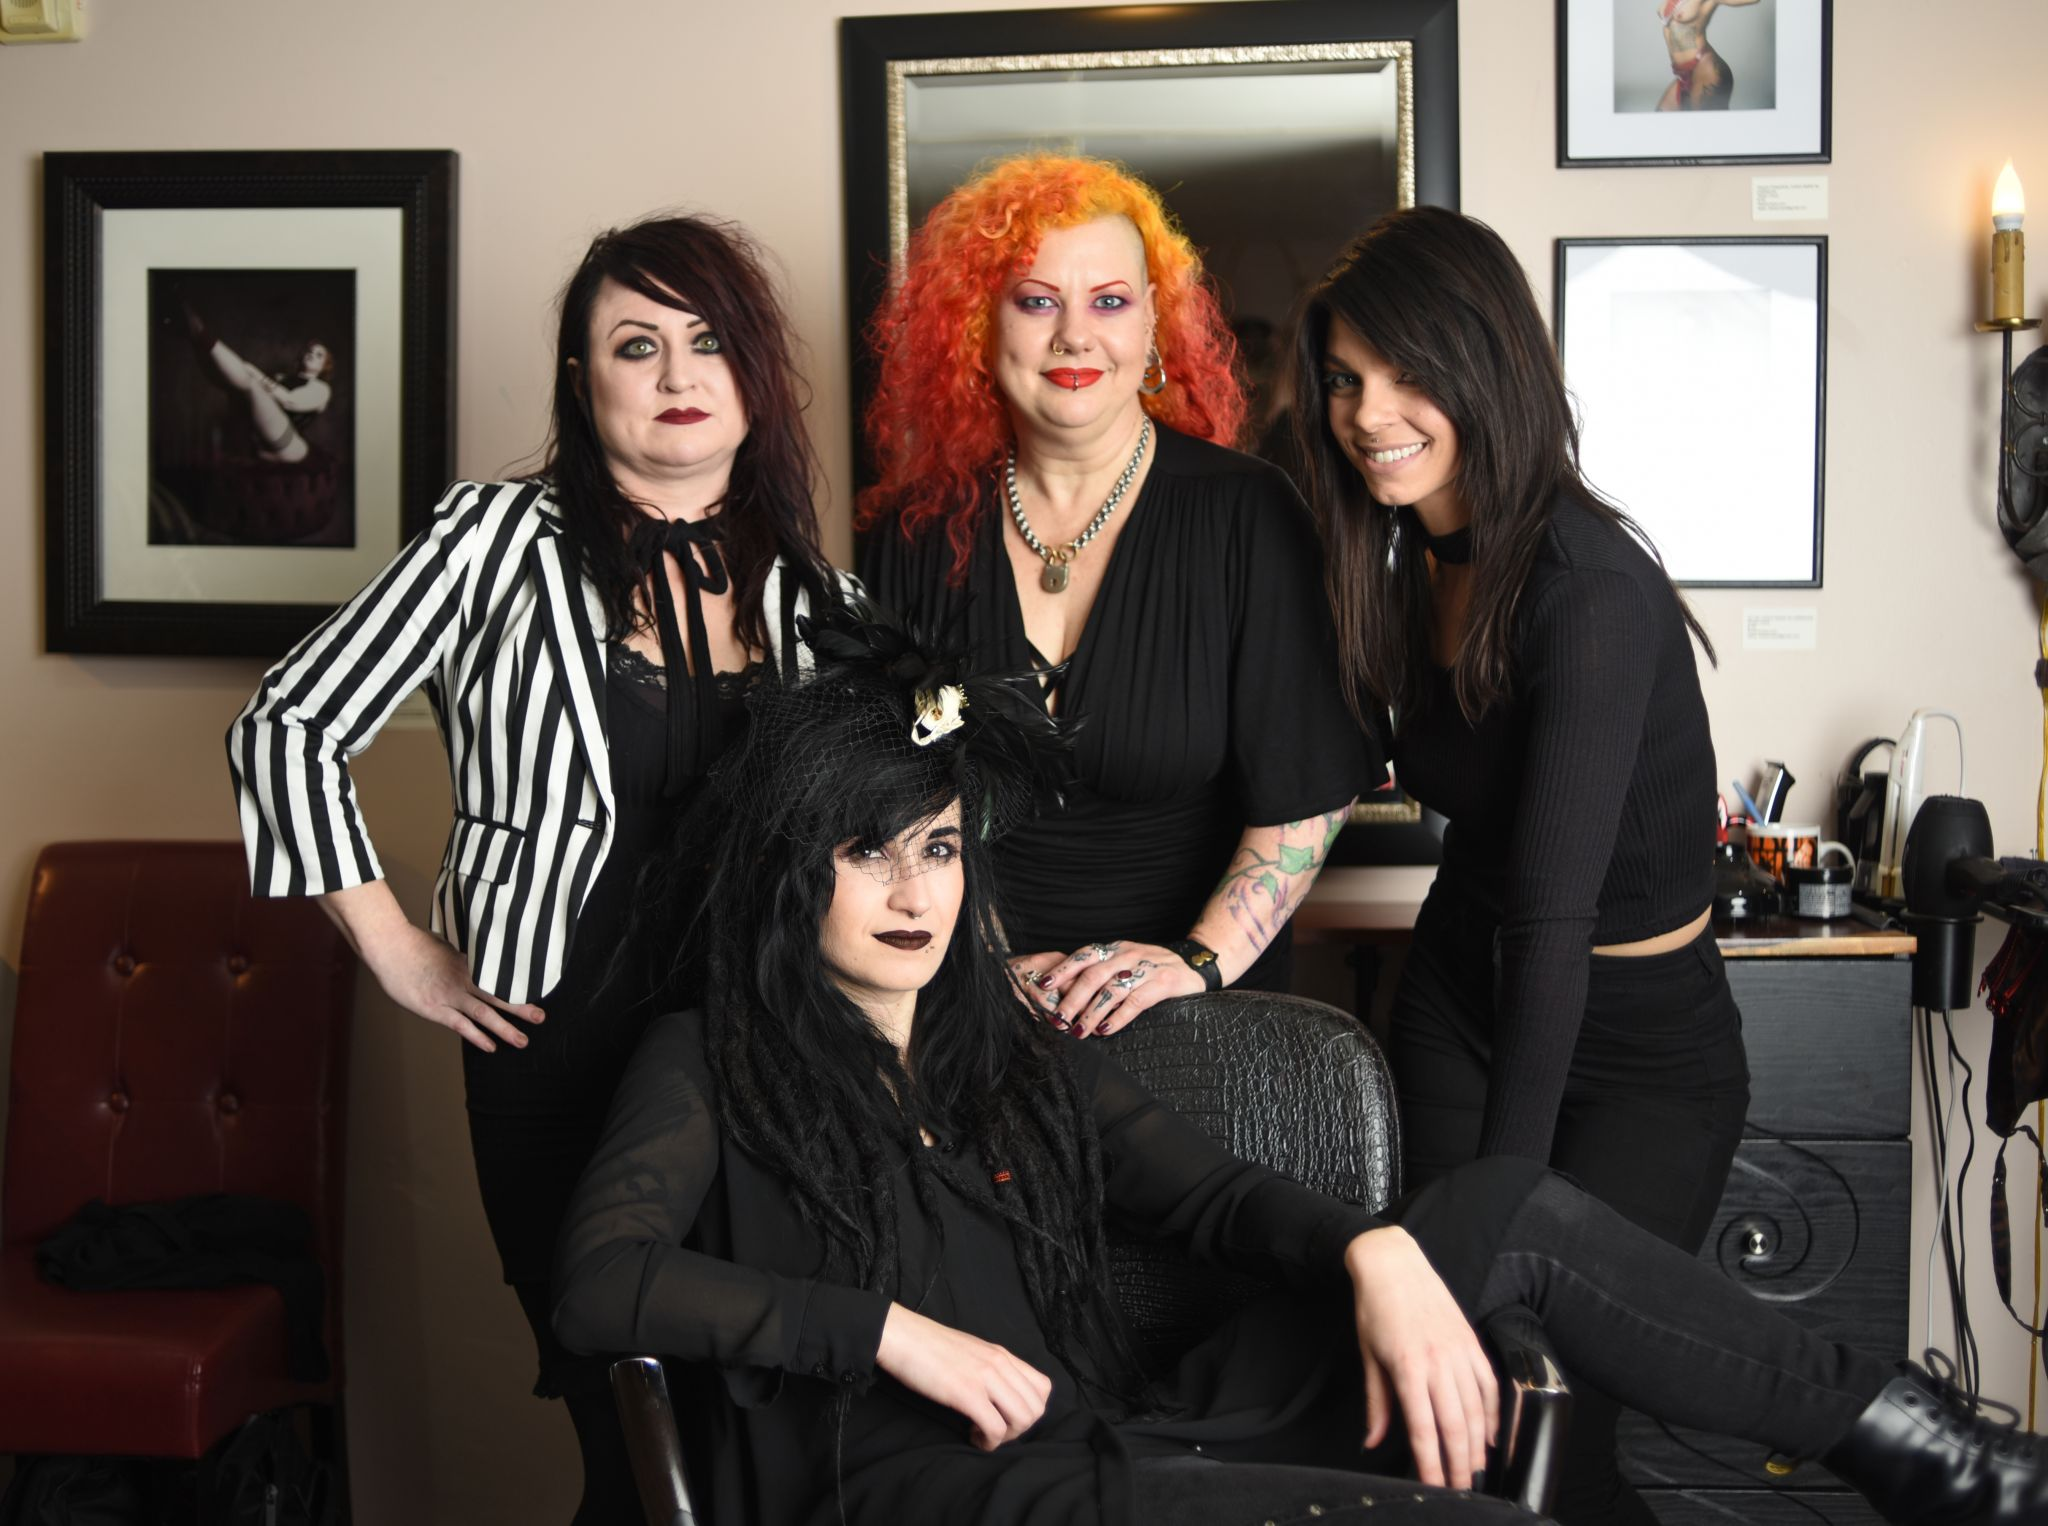 Amanda Rosa Play Boy inside san francisco's kink-friendly hair salon: 'my clients